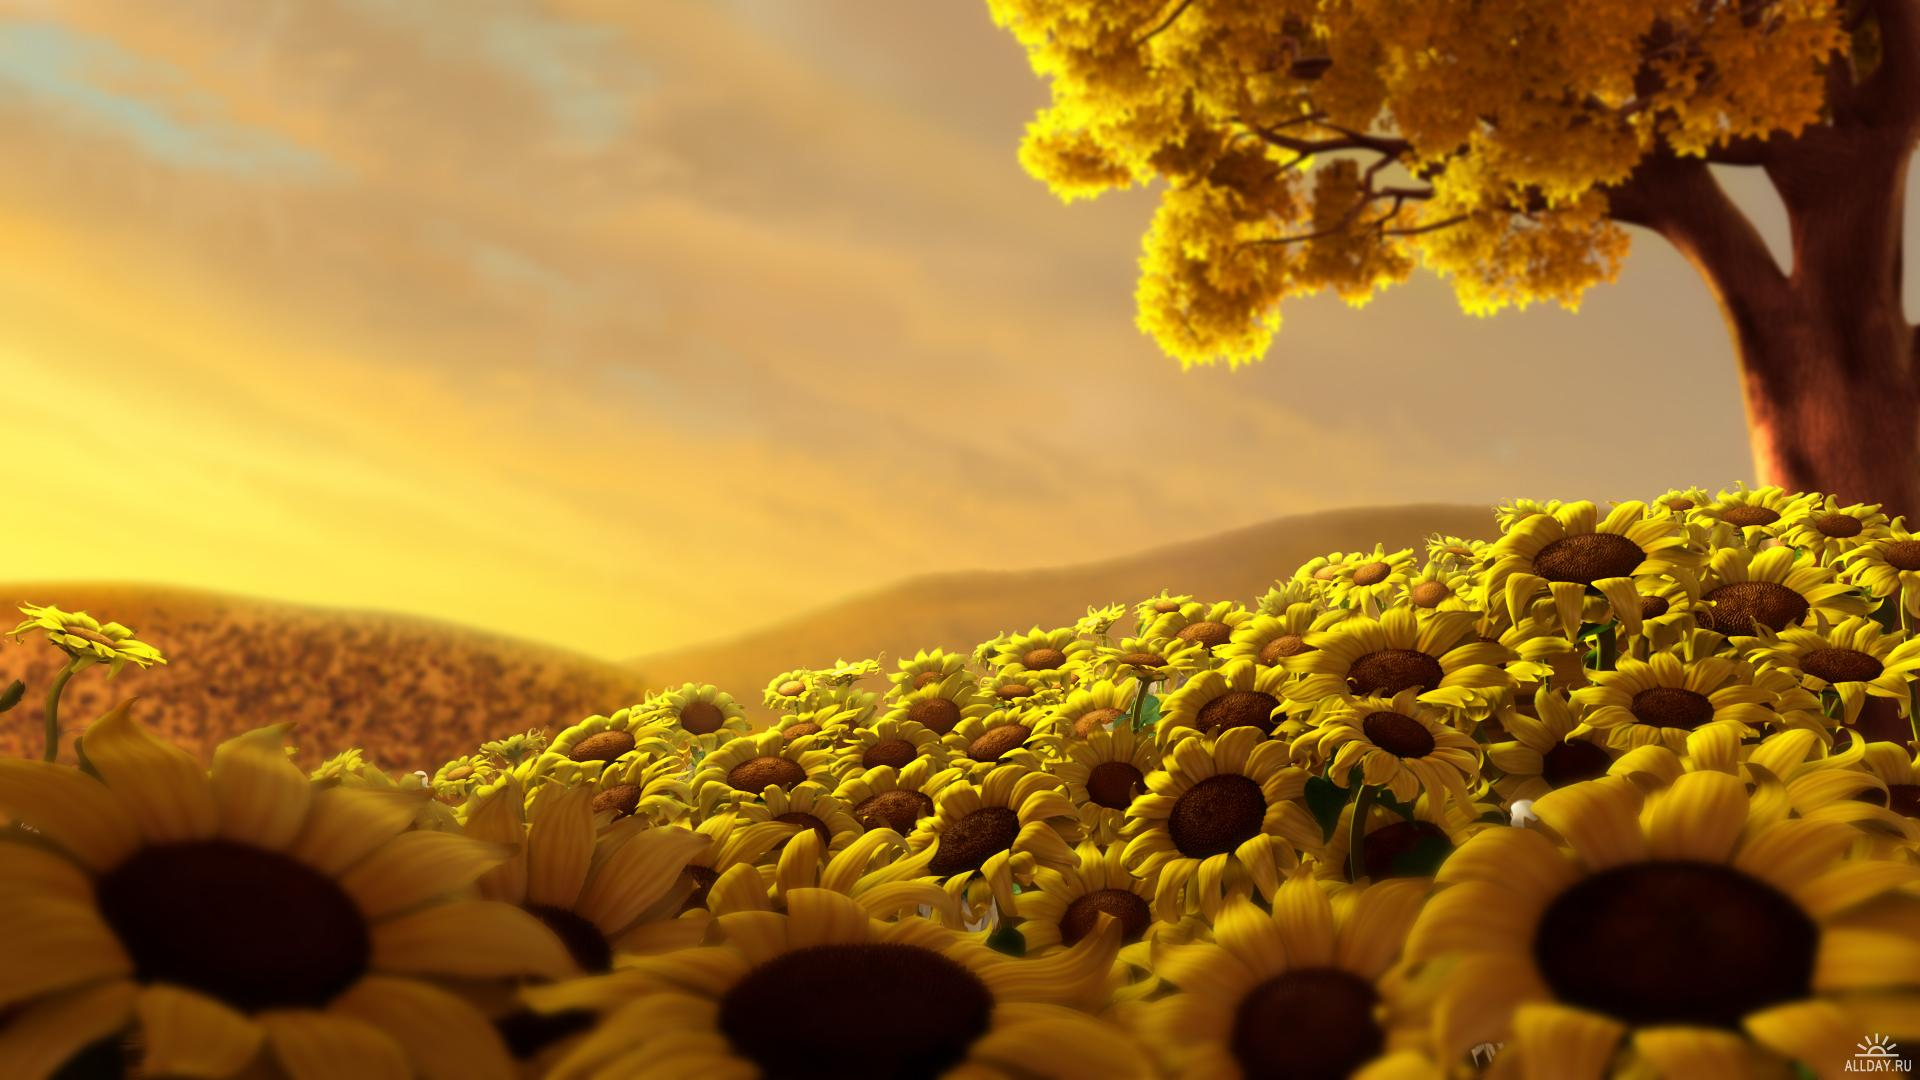 Yellow Nature Wallpaper